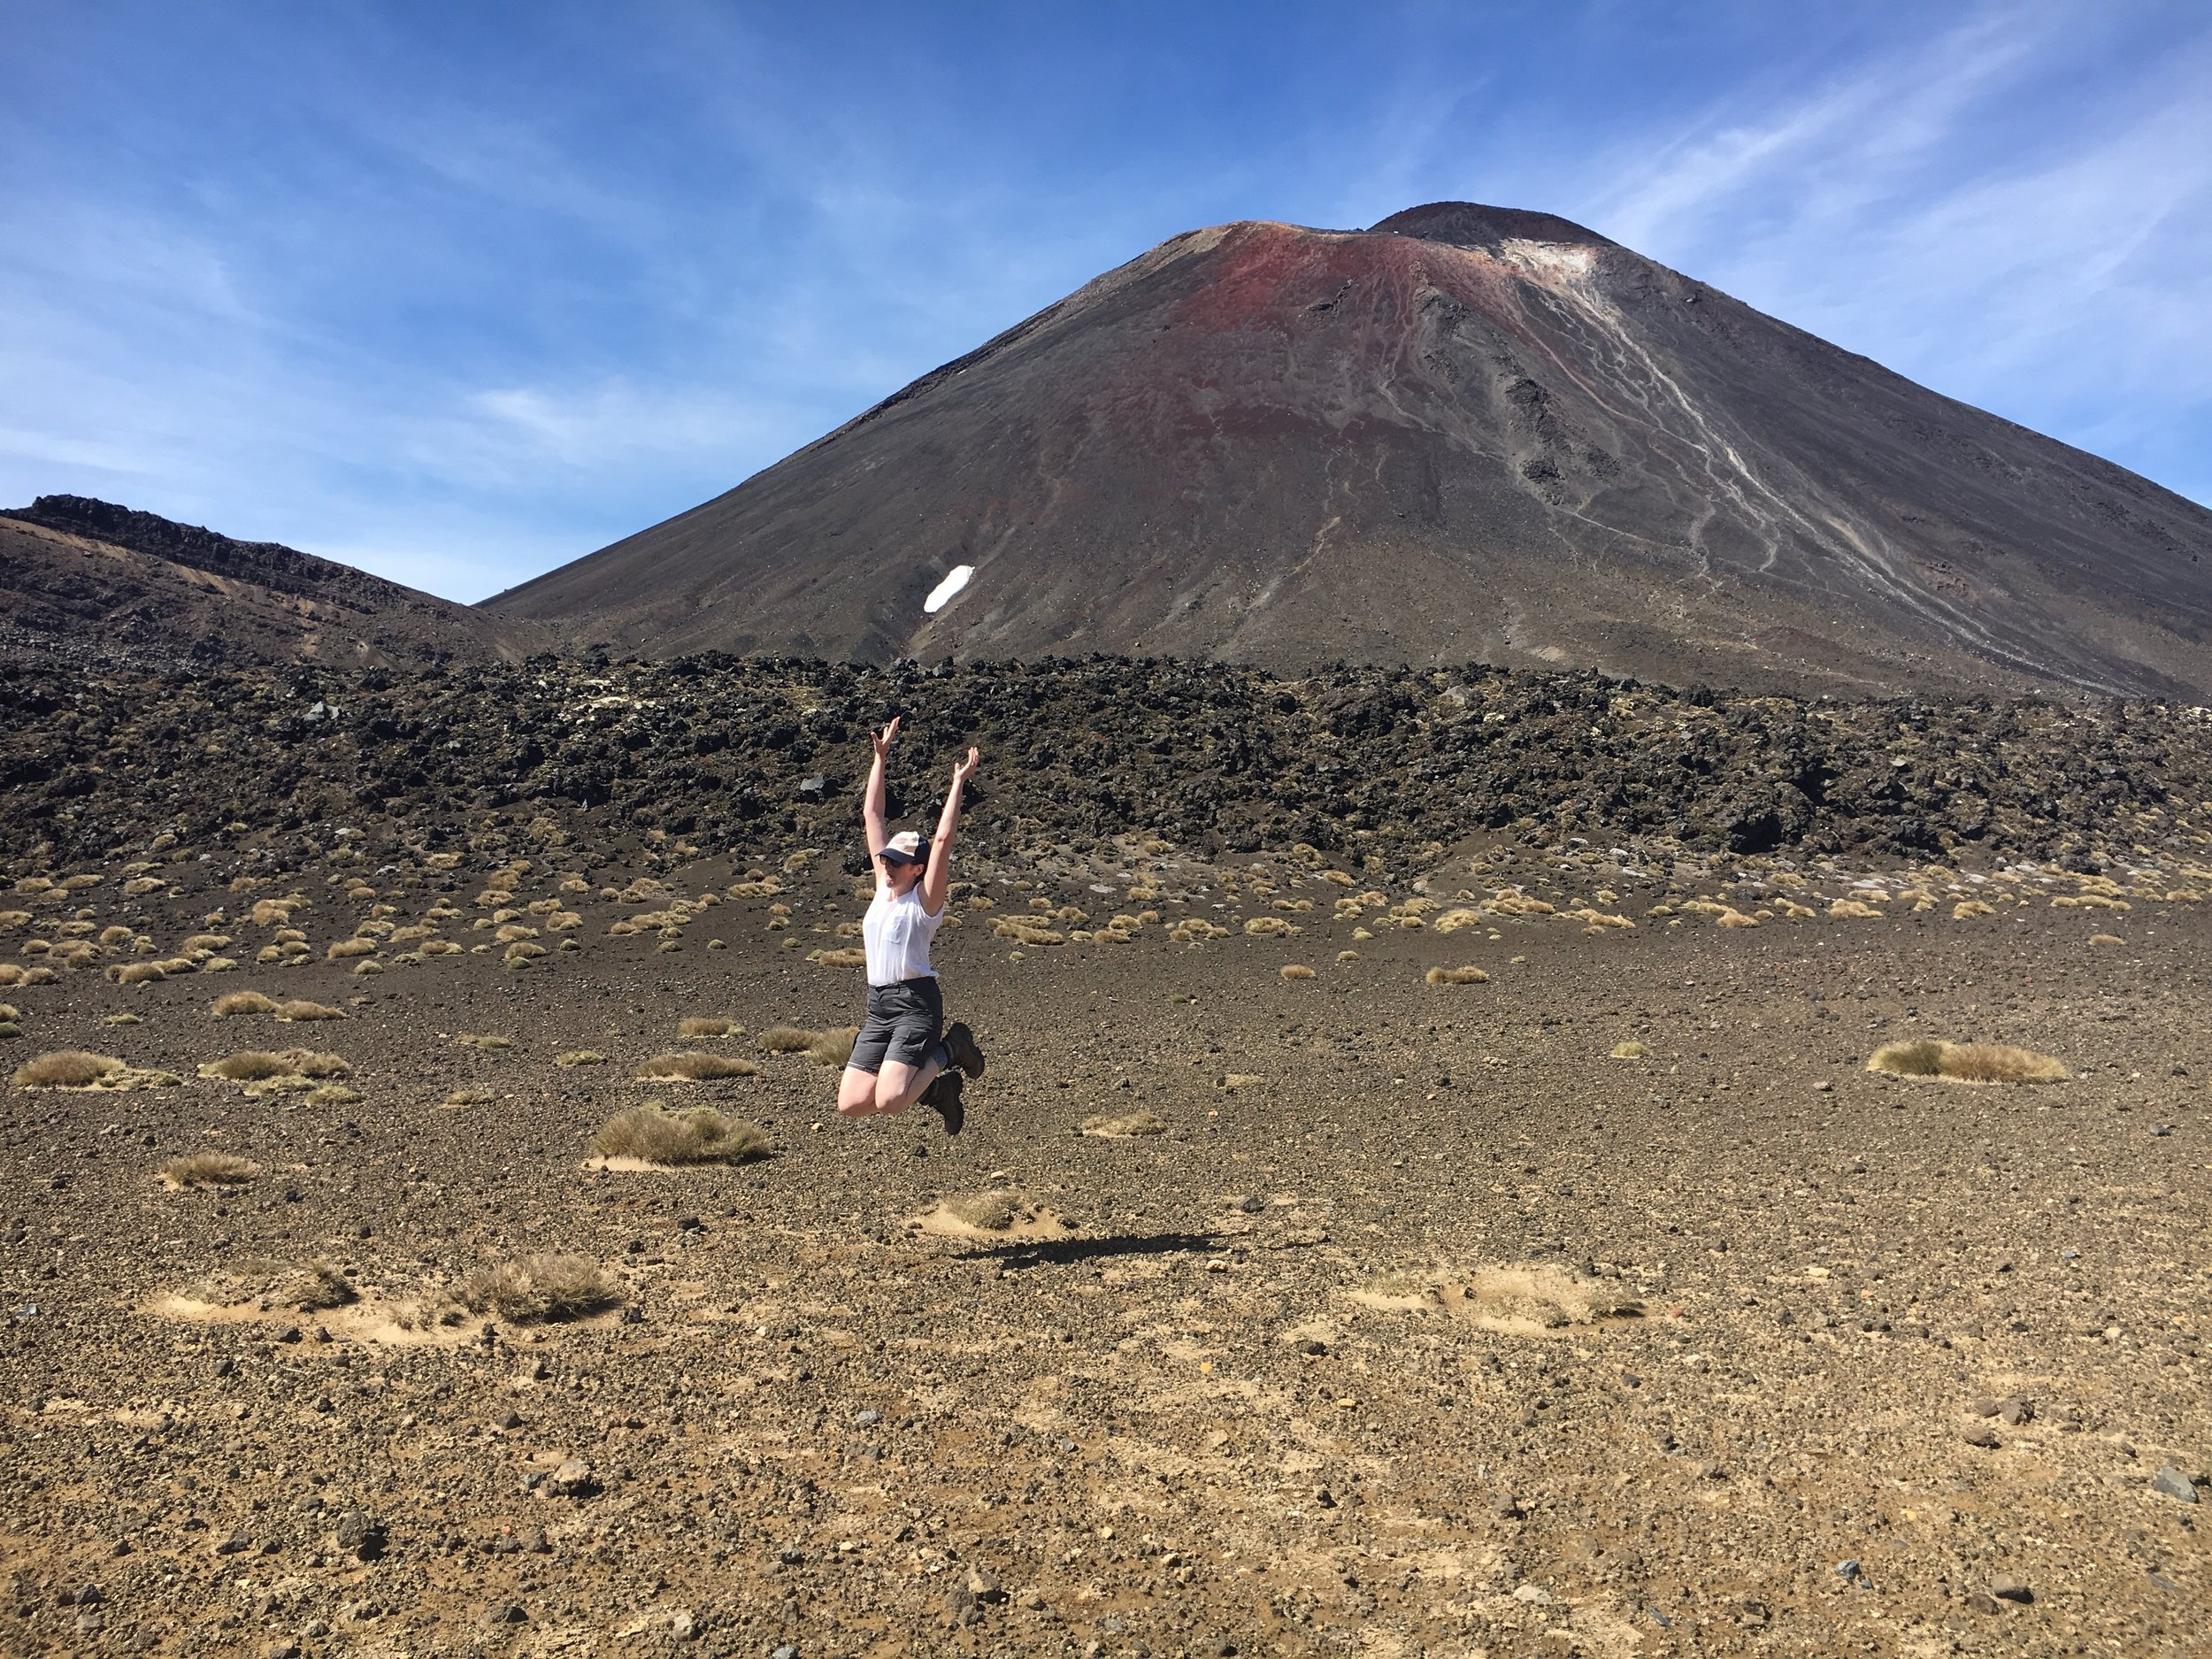 Jumping while I can still move my legs on the epic Tongariro Alpine Crossing.